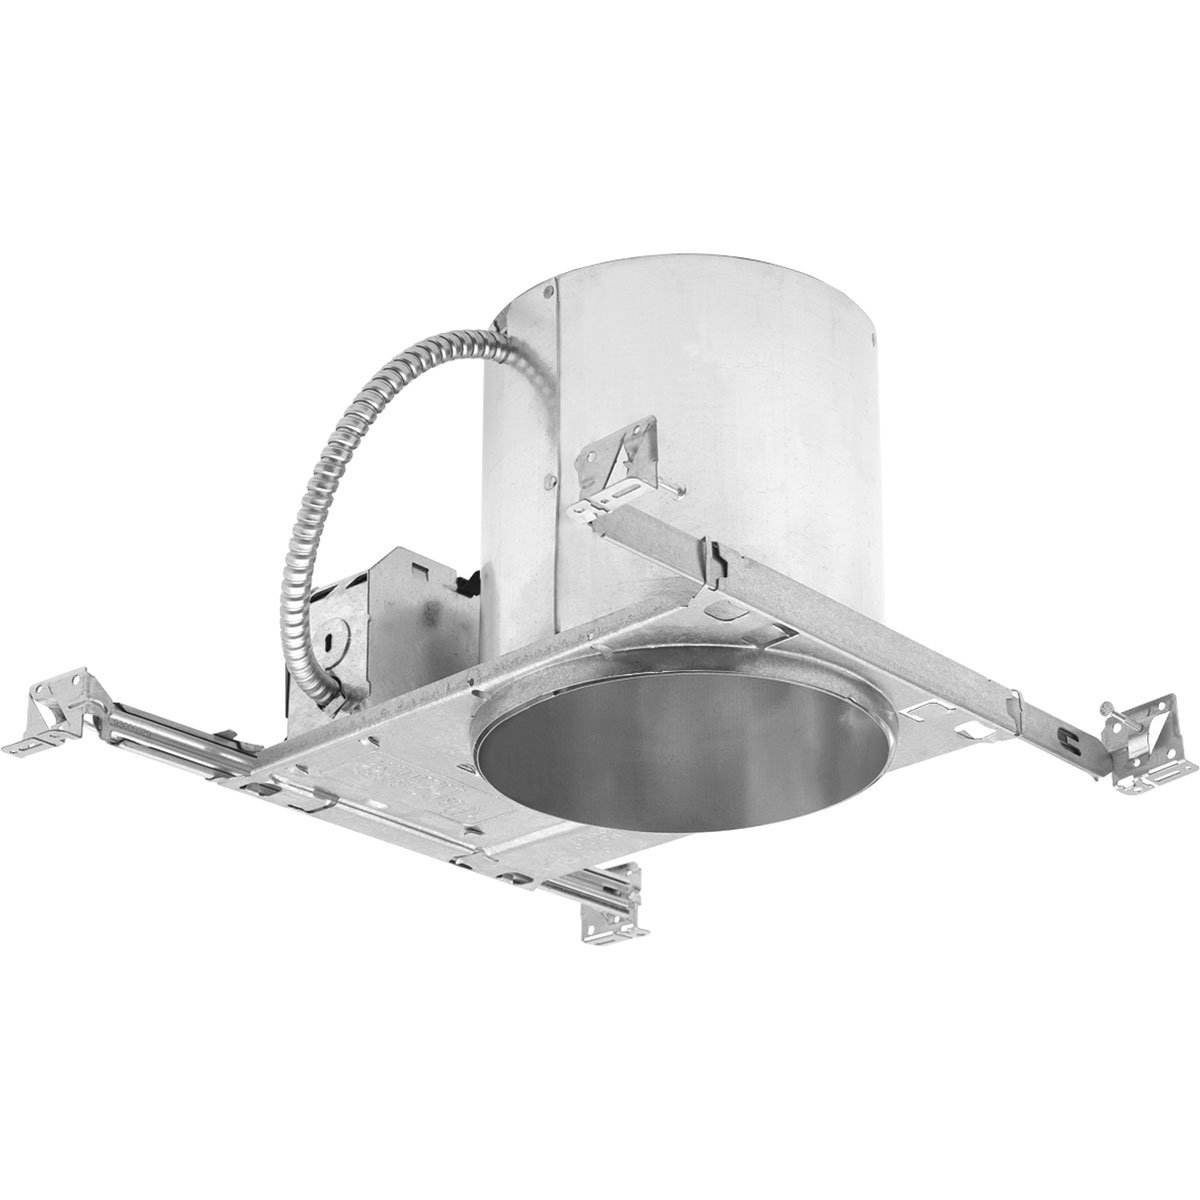 Progress Lighting P87-ATQC Quick Connect Unit Can Be Installed in Ceilings from 1/2-Inch to 1-1/2-Inch Thick Heavy Duty Mounting Frame